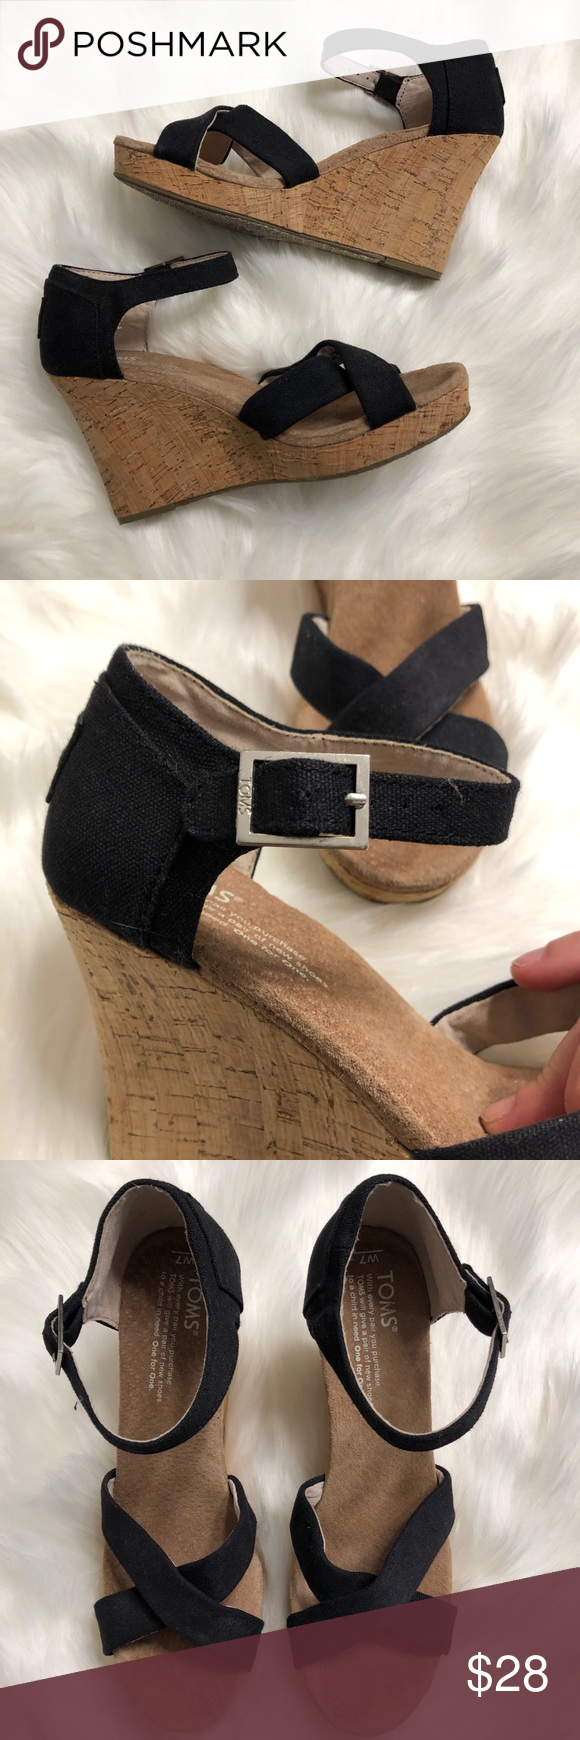 "aeb500353a6 TOMS Sienna Black Espadrille Wedge Sandals TOMS Sienna black strappy  espadrille wedge sandals. 3.75"" wedge heel. Size 7. Good used condition  with normal ..."